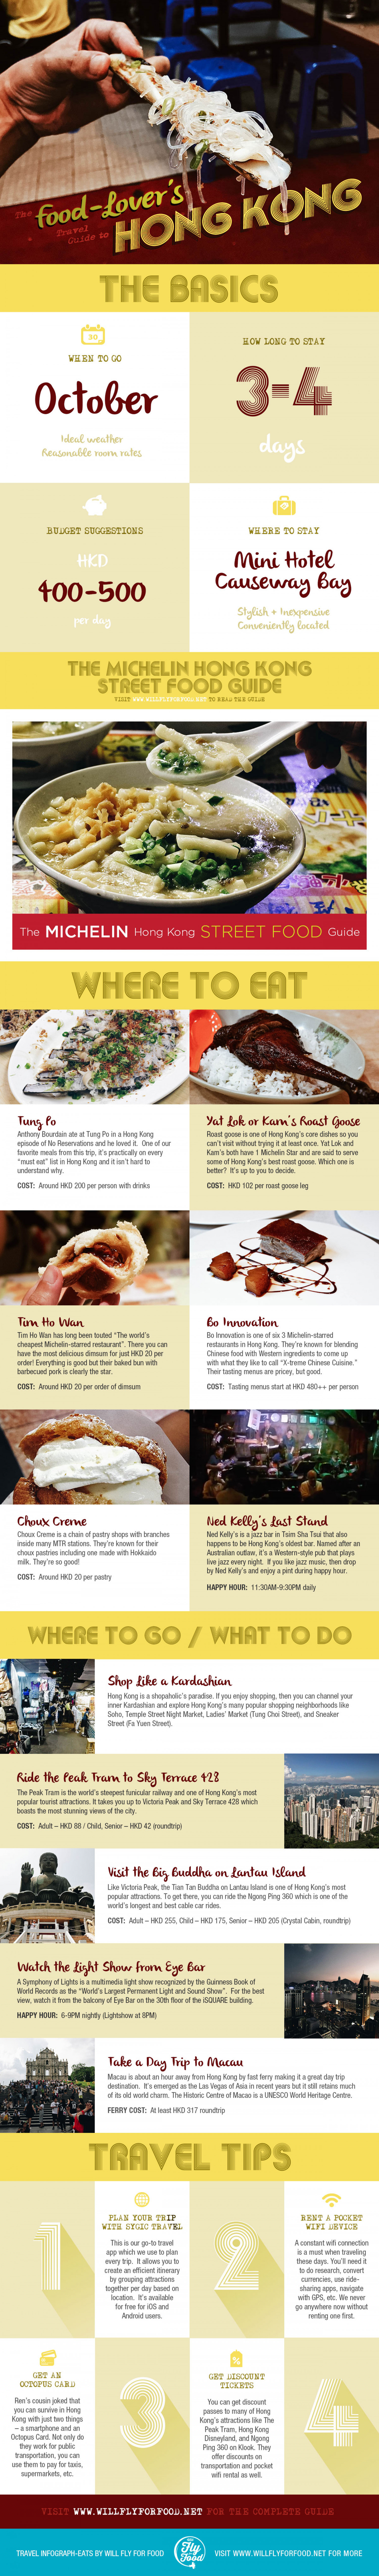 The Food-Lover's Travel Guide to Hong Kong Infographic